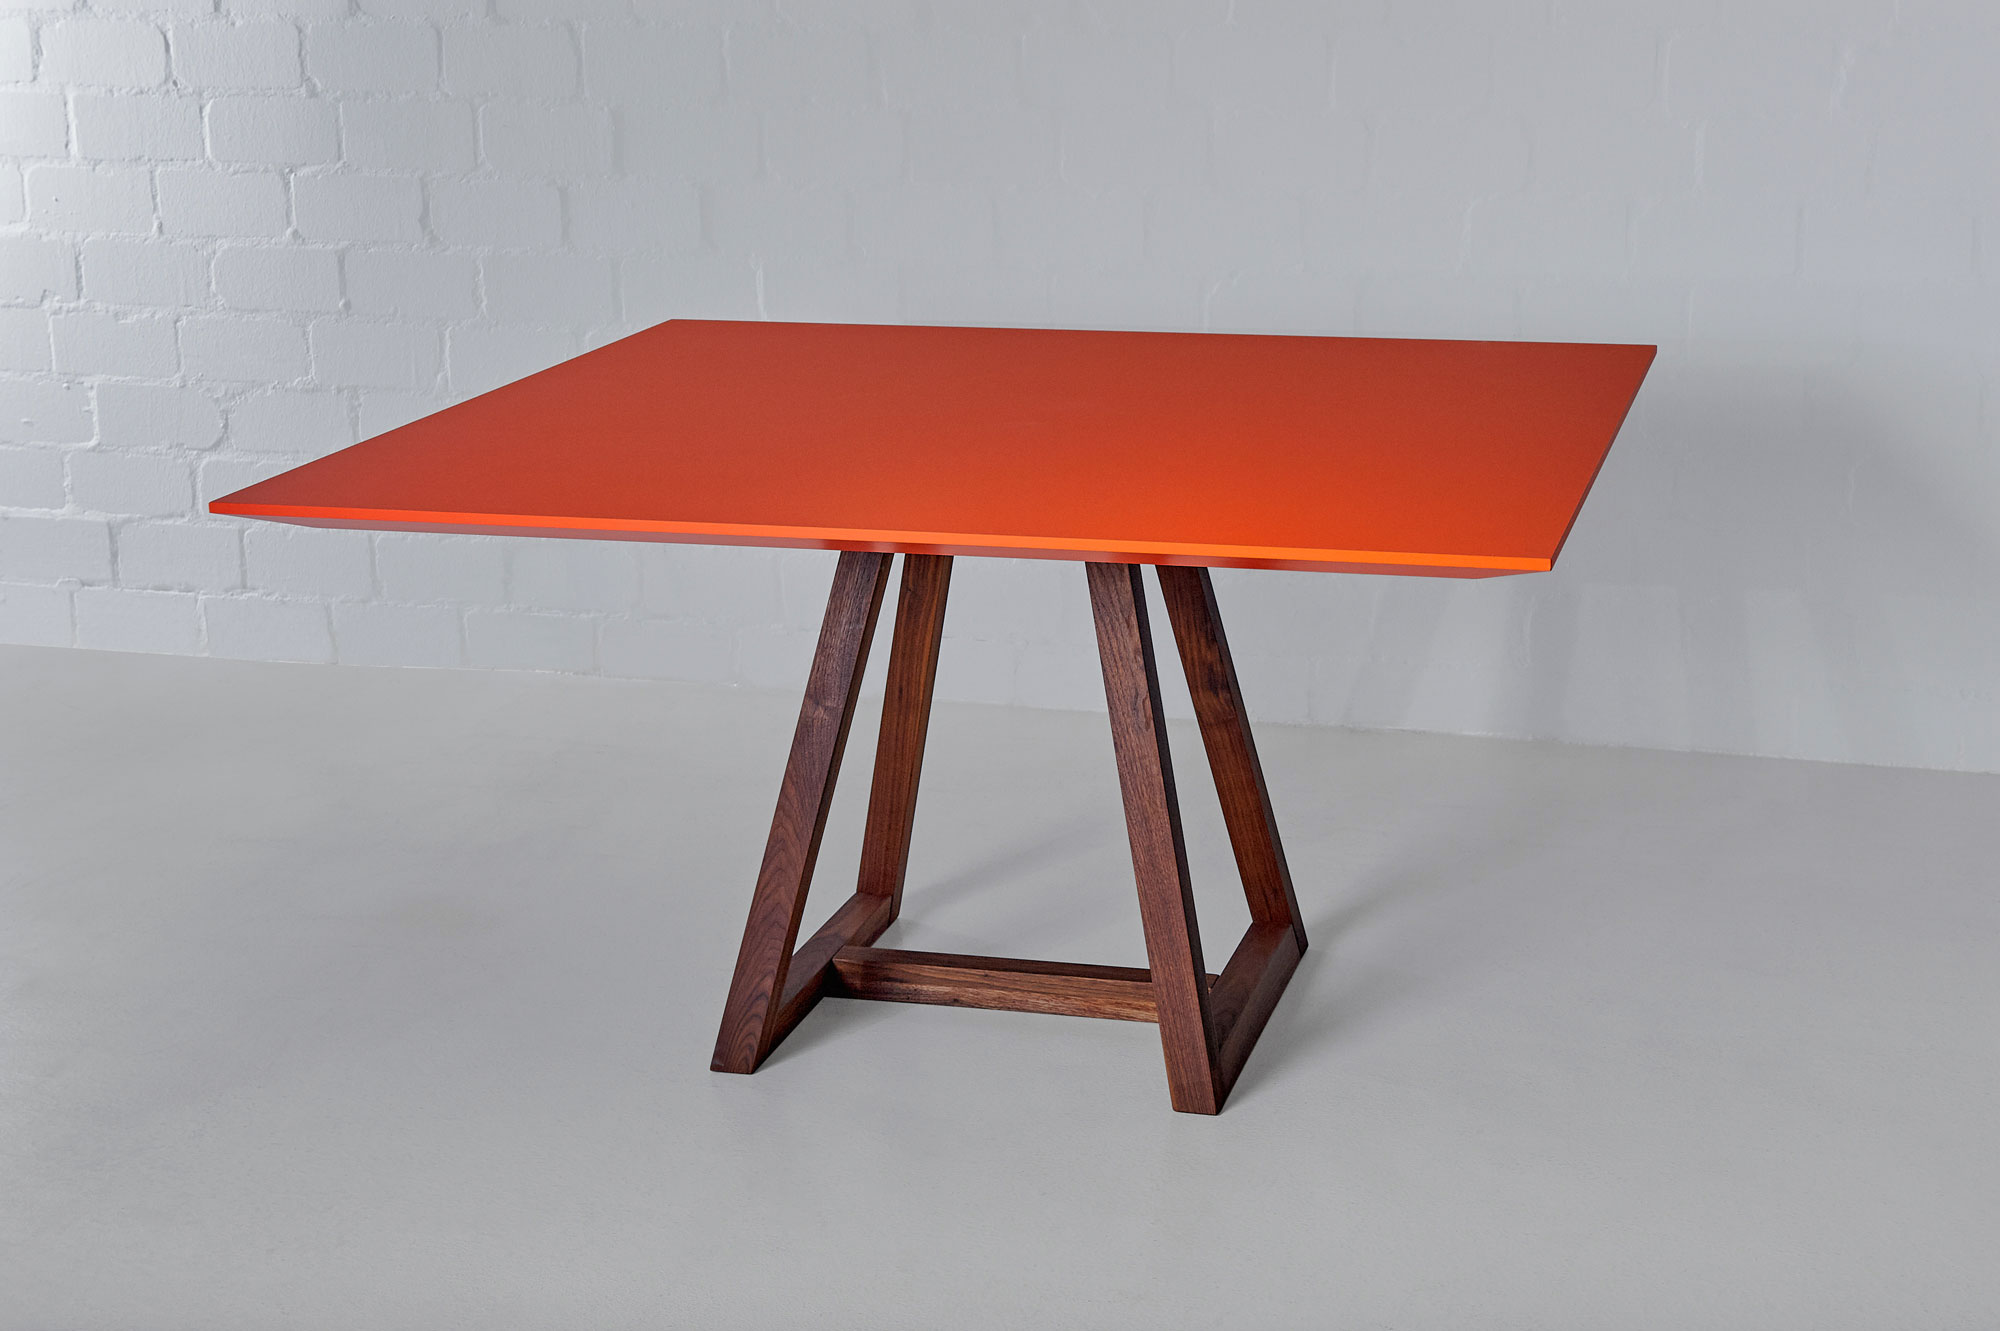 Linoleum table MARGO SQUARE LINO Edited custom made in solid wood by vitamin design